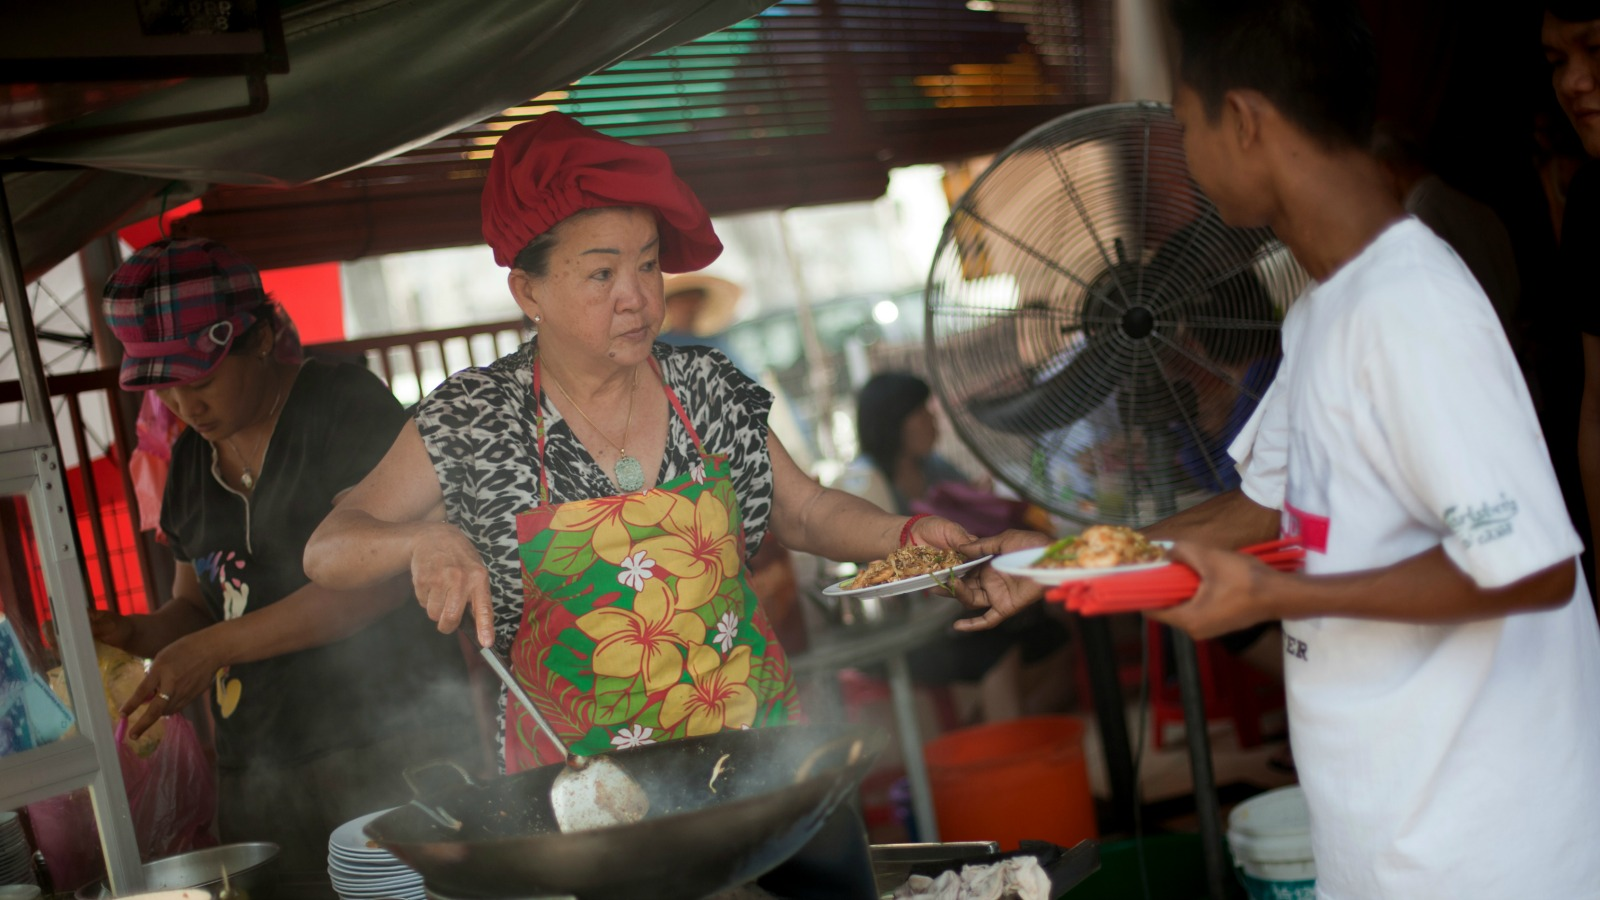 George Town, Penang: Asia's greatest street food city? | CNN